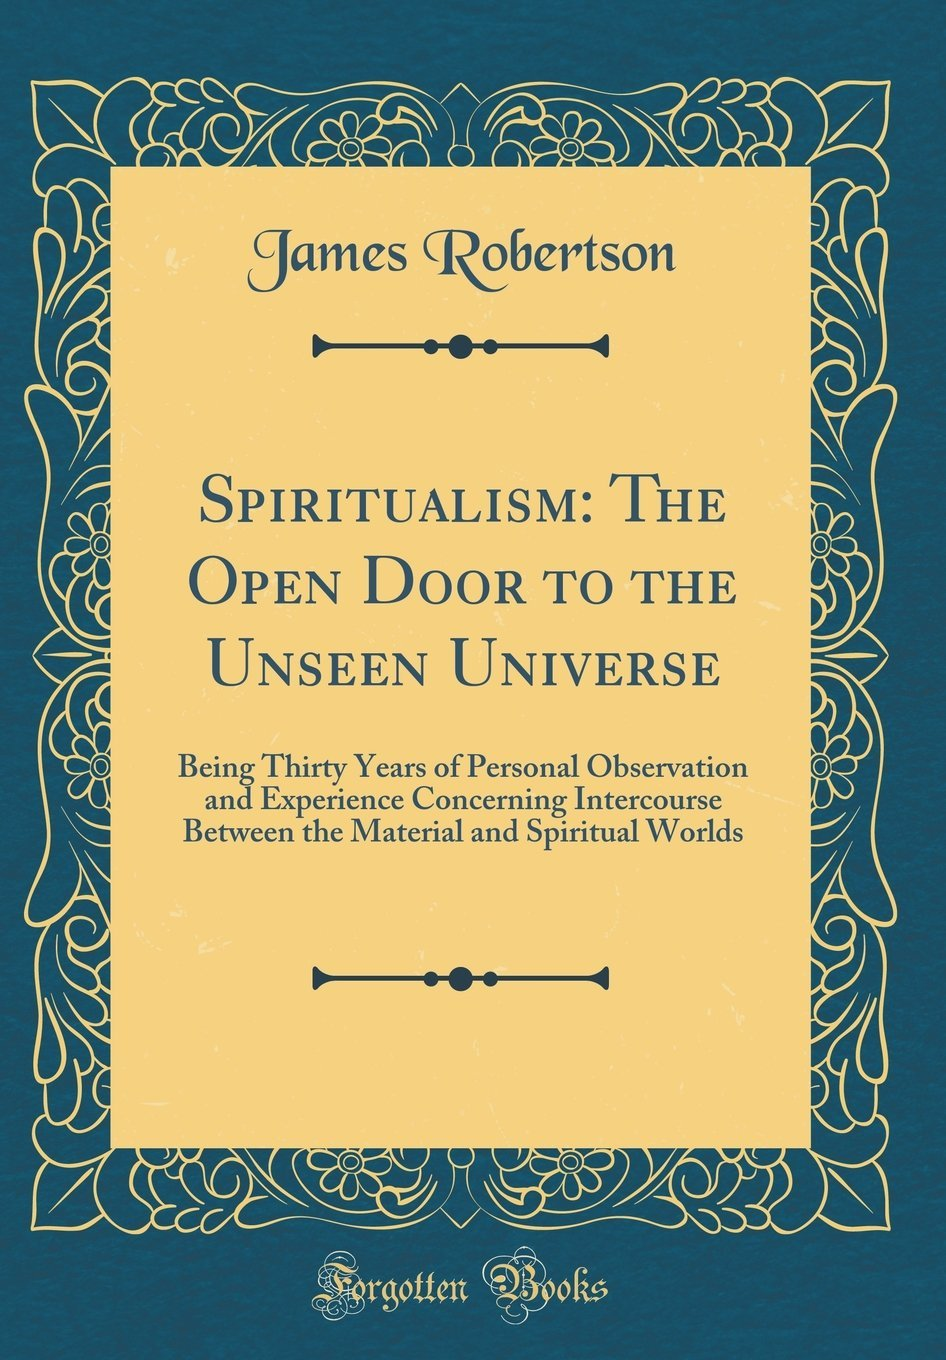 Download Spiritualism: The Open Door to the Unseen Universe: Being Thirty Years of Personal Observation and Experience Concerning Intercourse Between the Material and Spiritual Worlds (Classic Reprint) ePub fb2 book